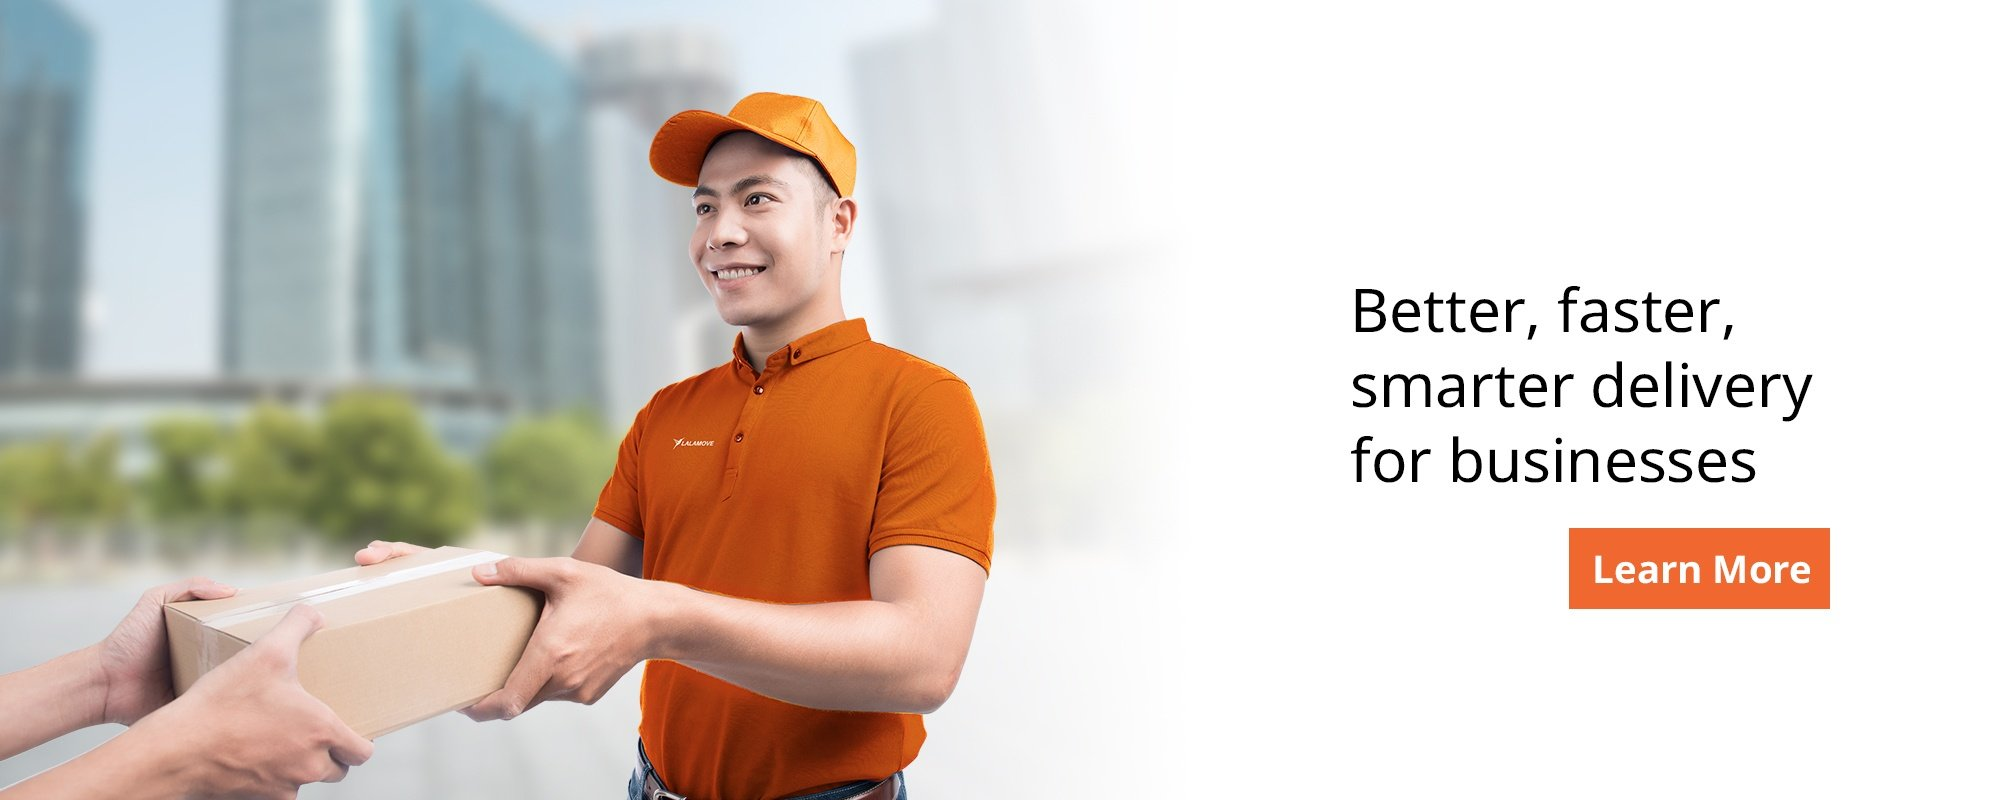 Lalamove Bangkok, better, faster, smarter delivery for businesses